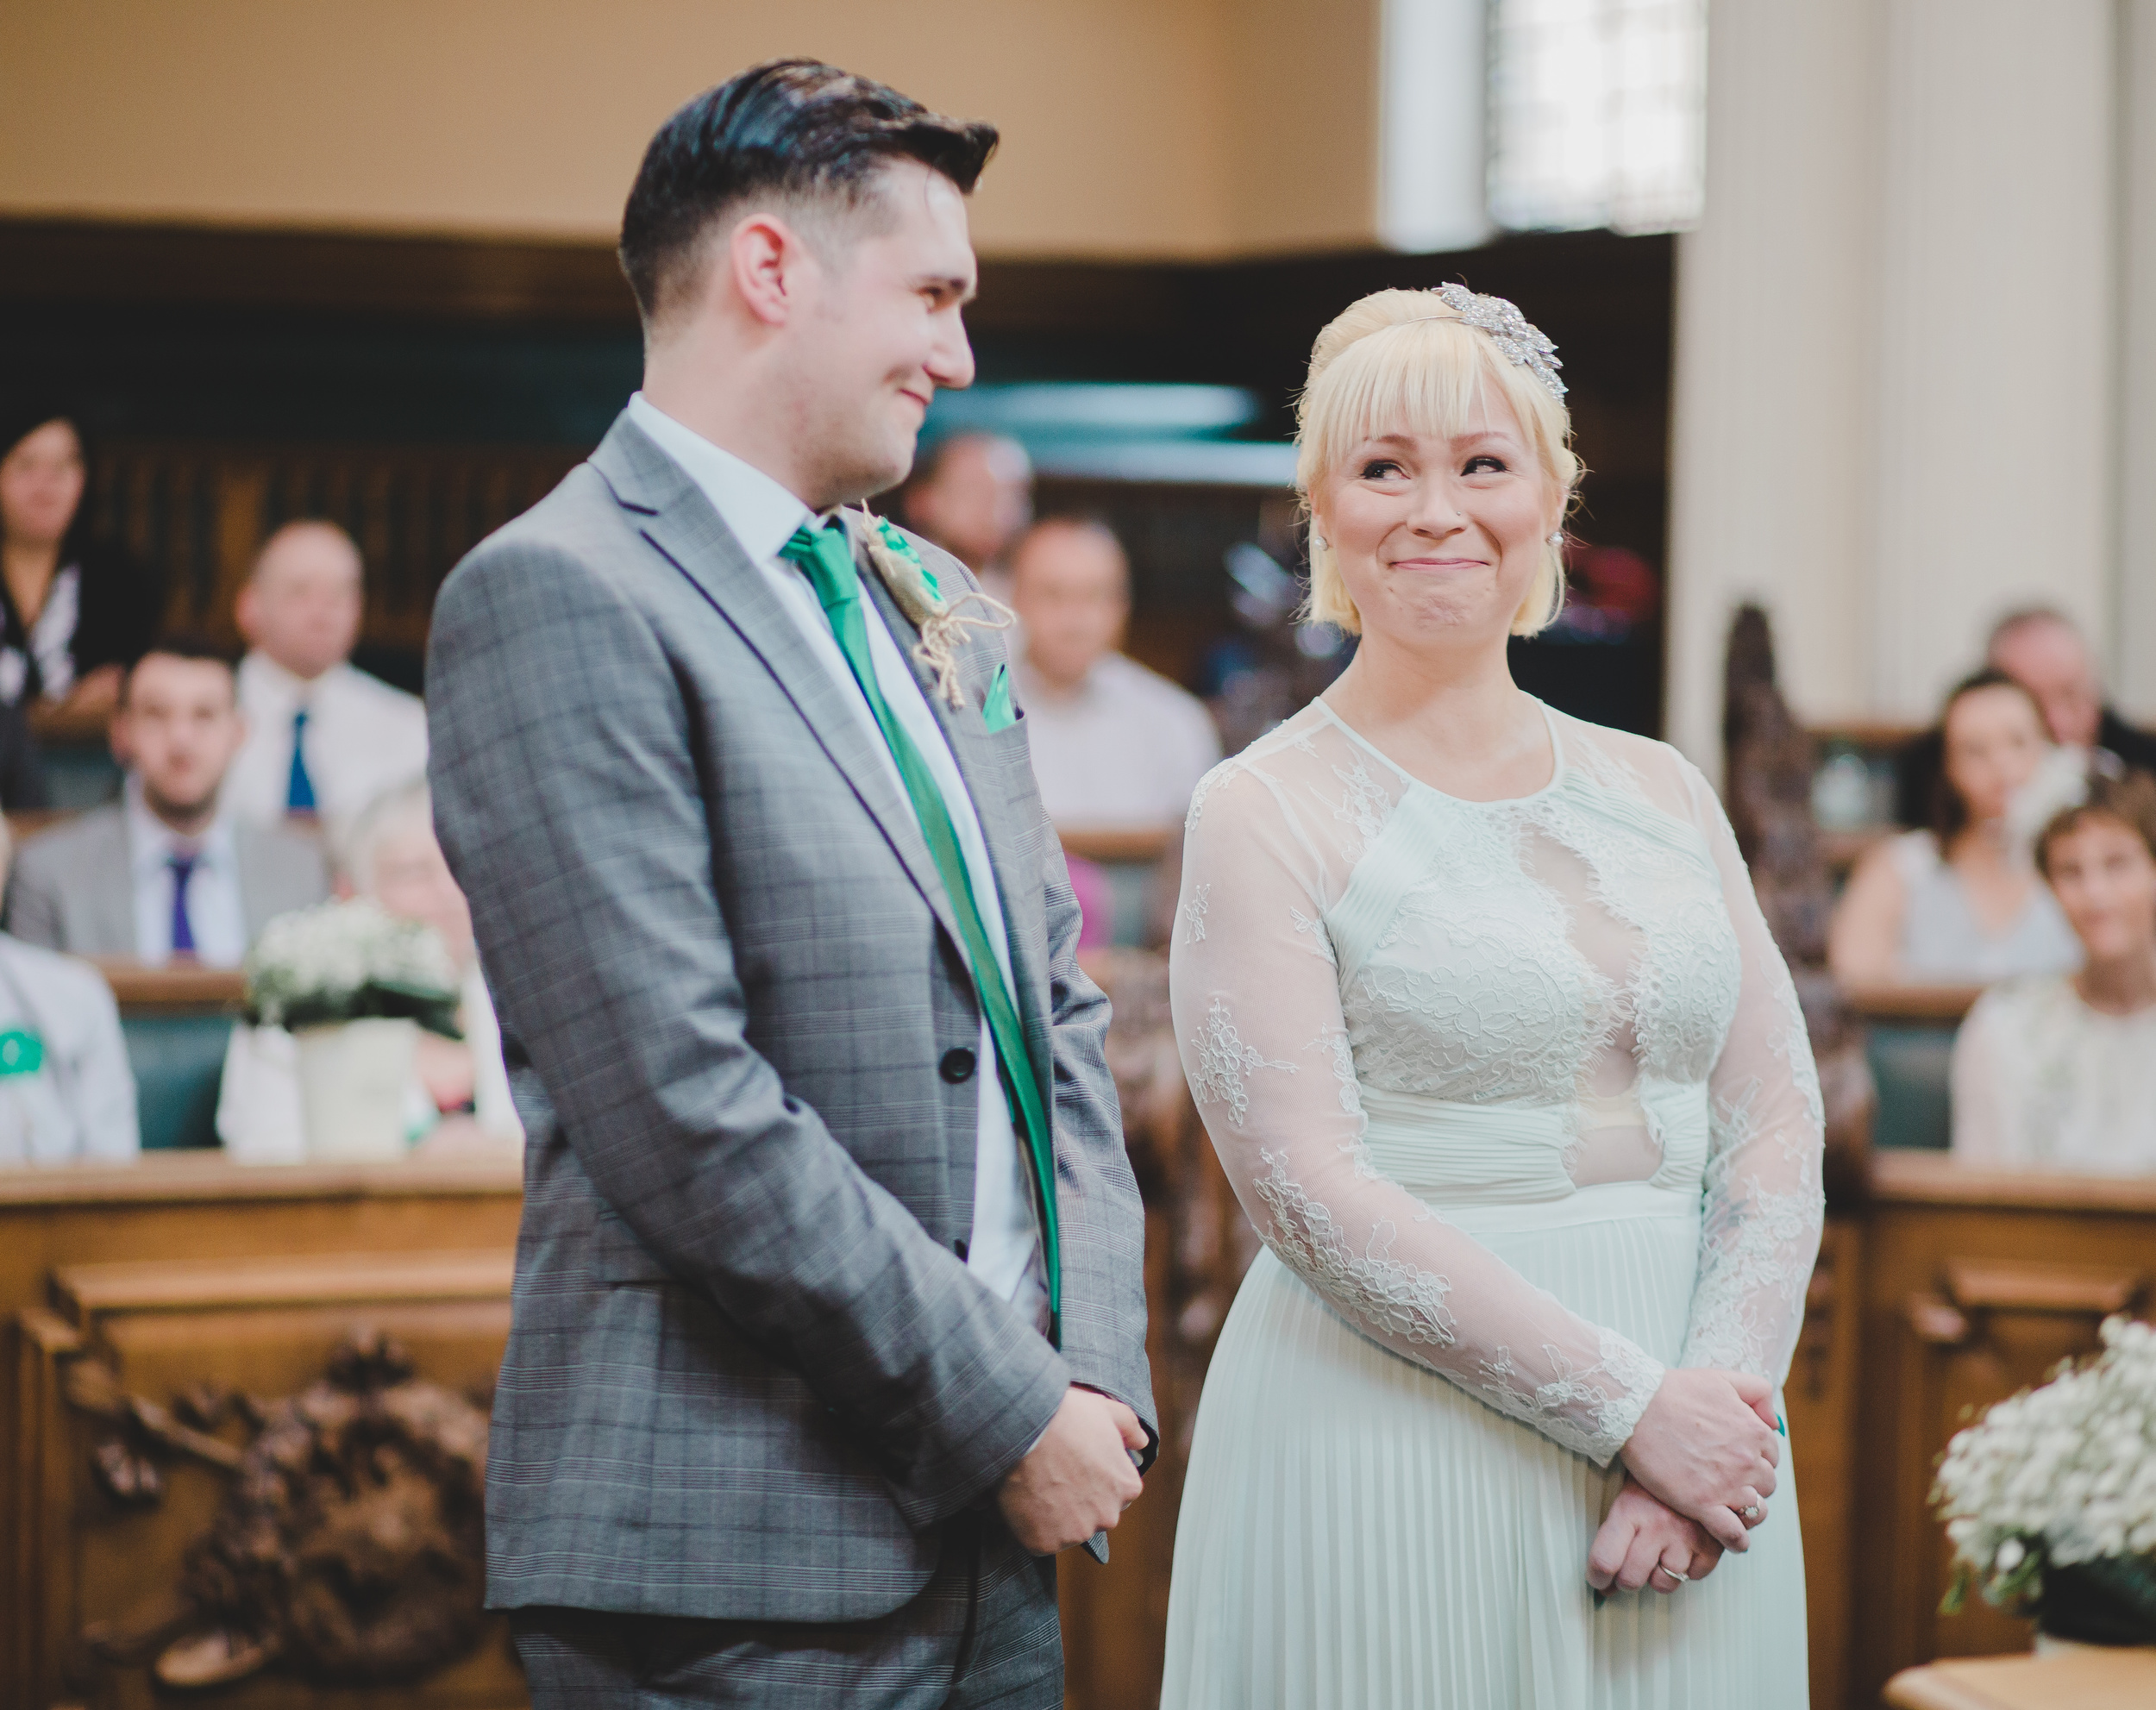 exchanging smiles - documentary wedding photography